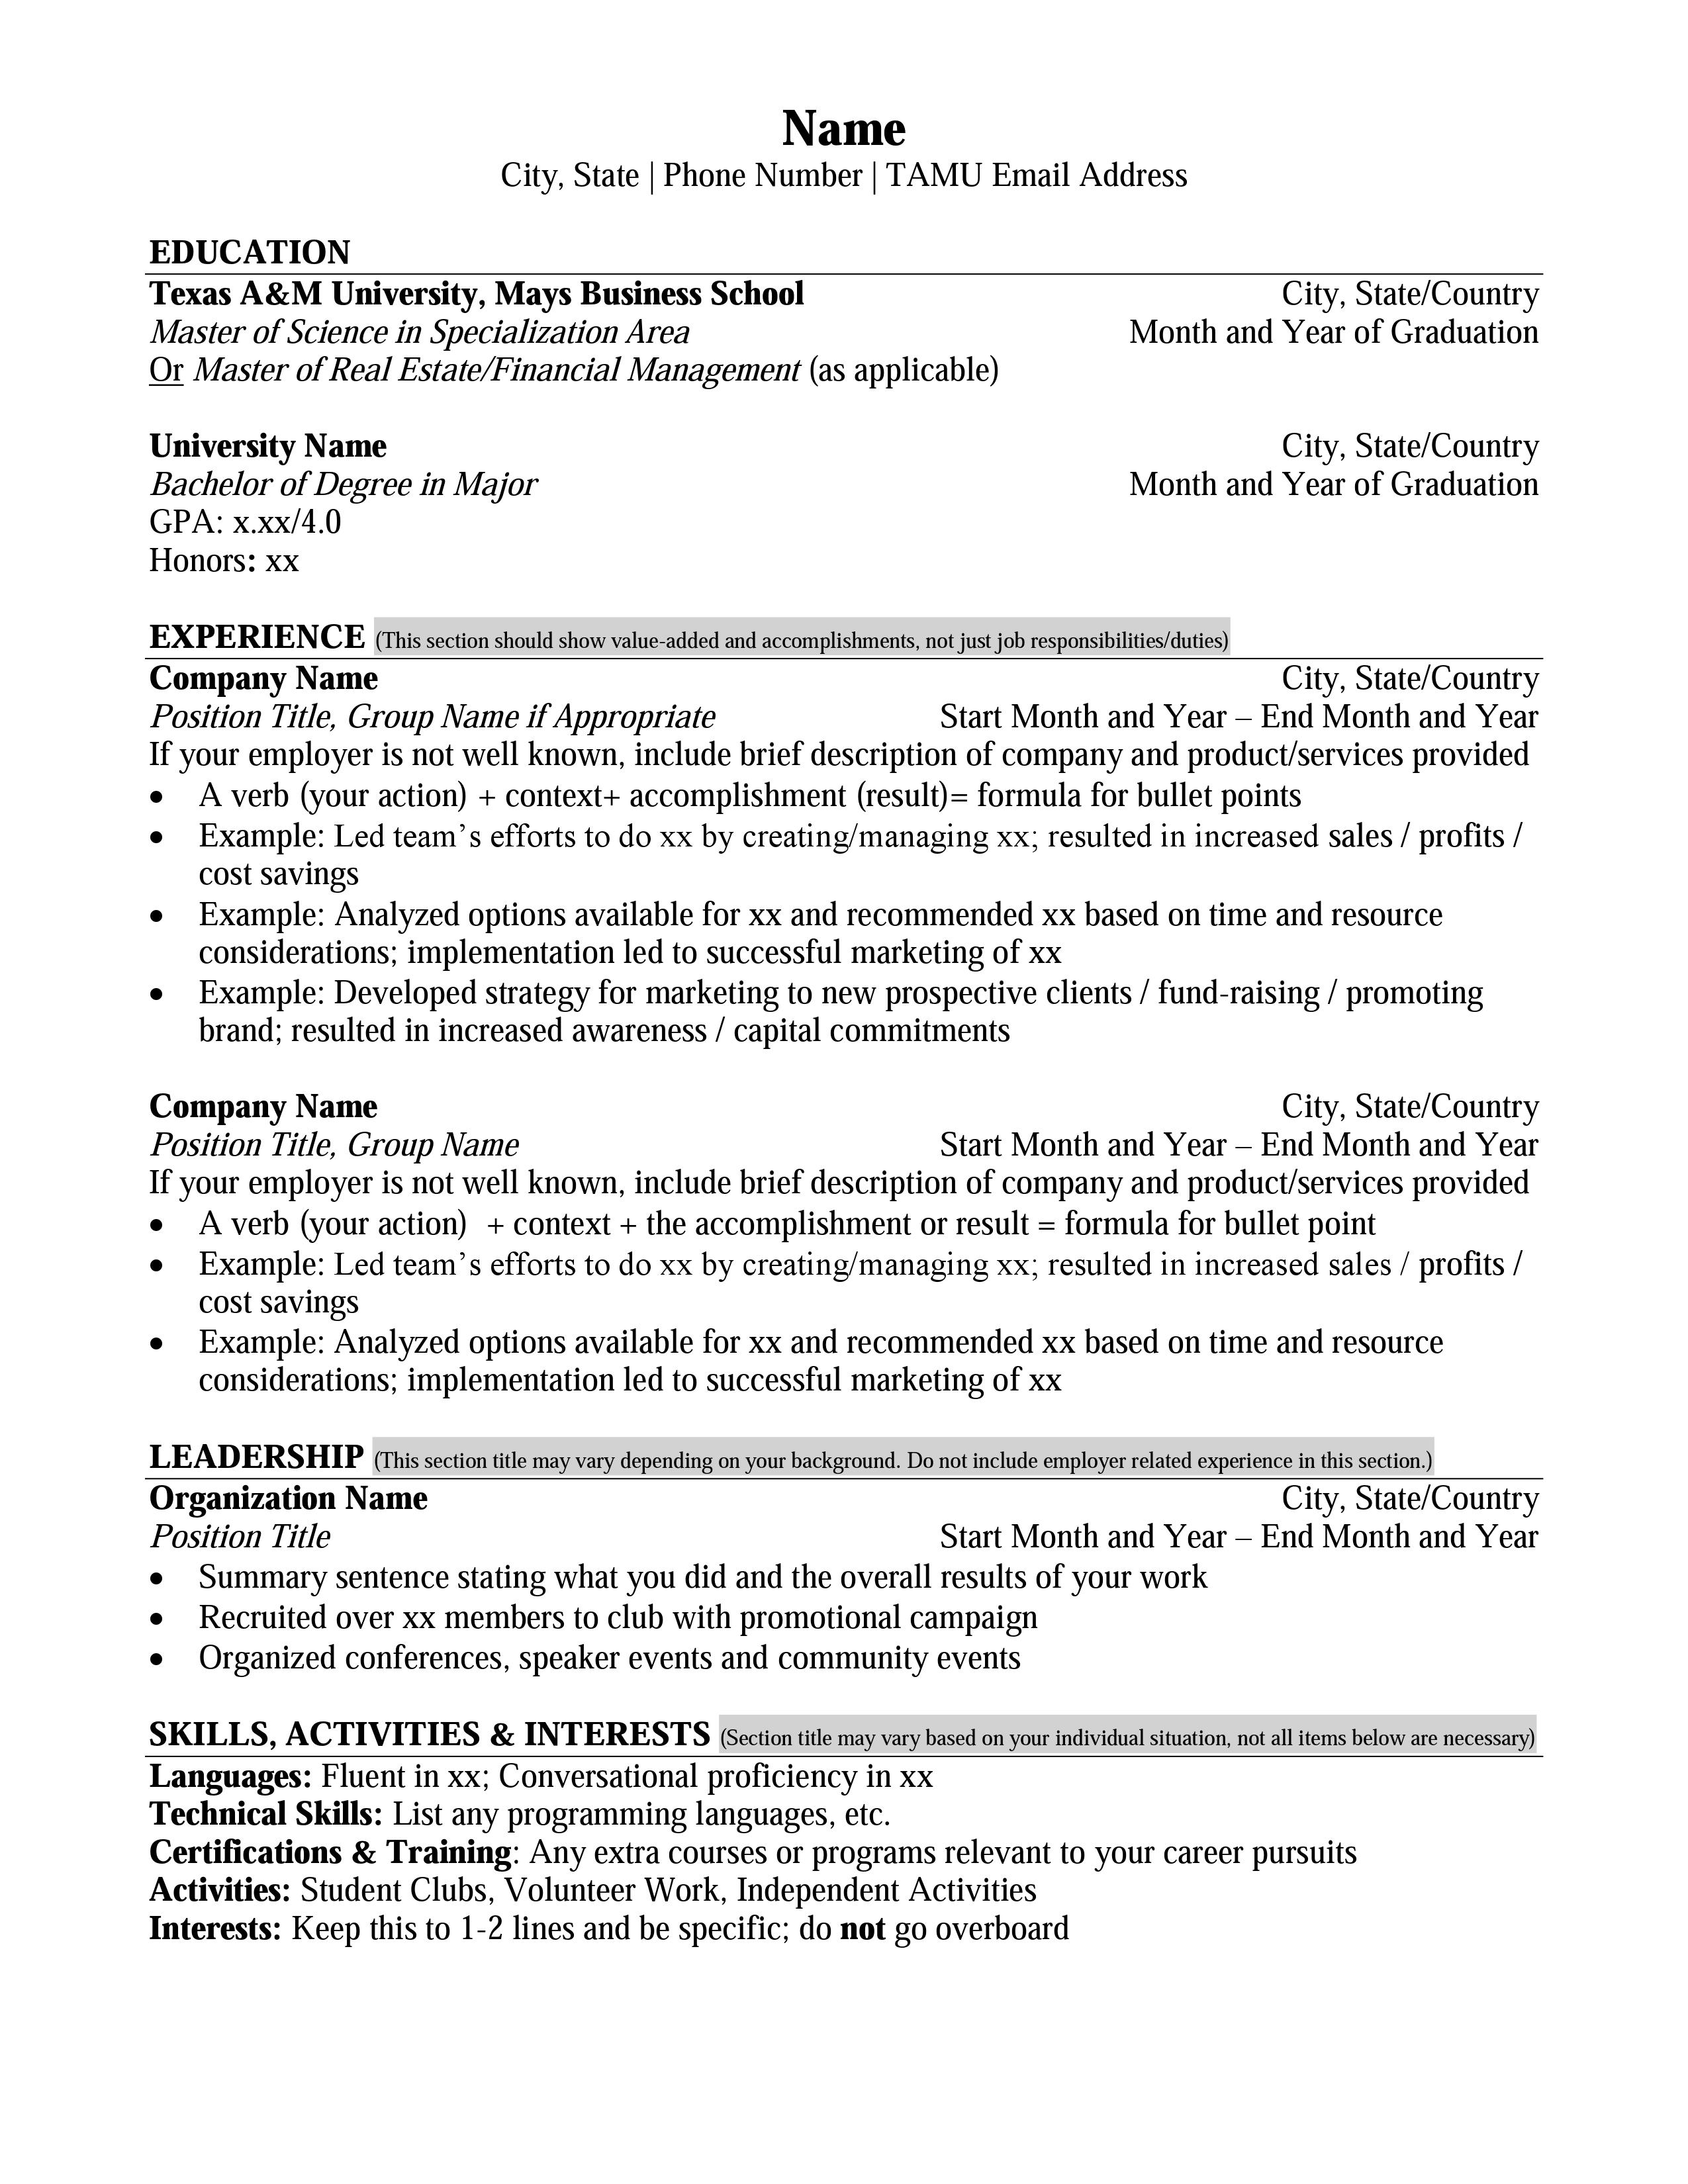 resume for college student 2019